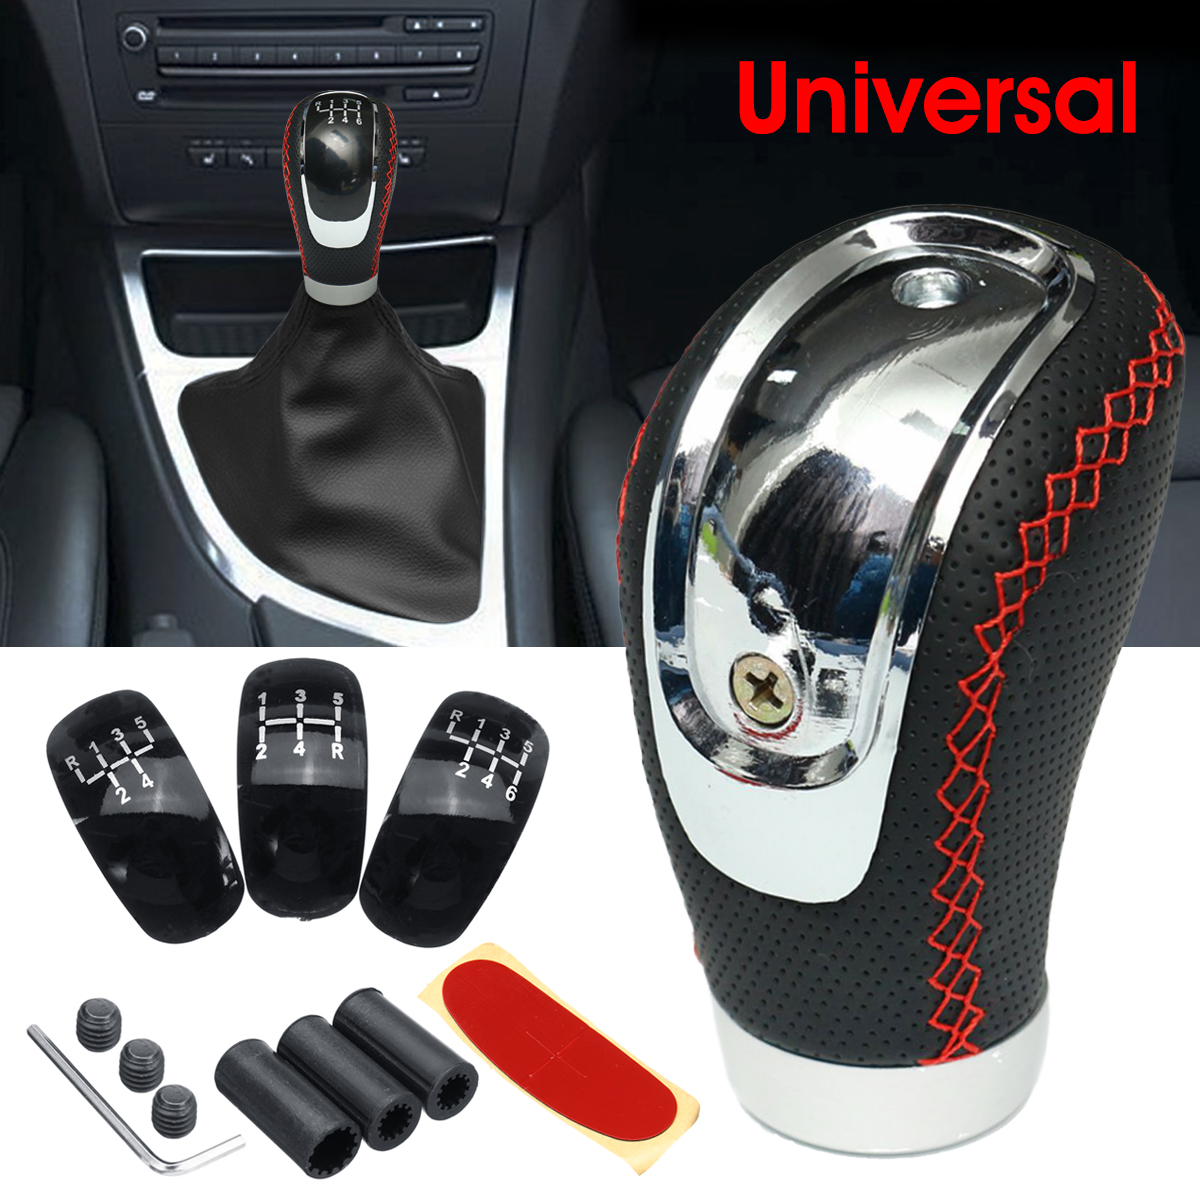 Shifter Adapter Universal 5 Speed Manual Metal Chrome Gear Shift Knob Lever Stick Pen Handle Head Car Styling Accessories Racing Style Black